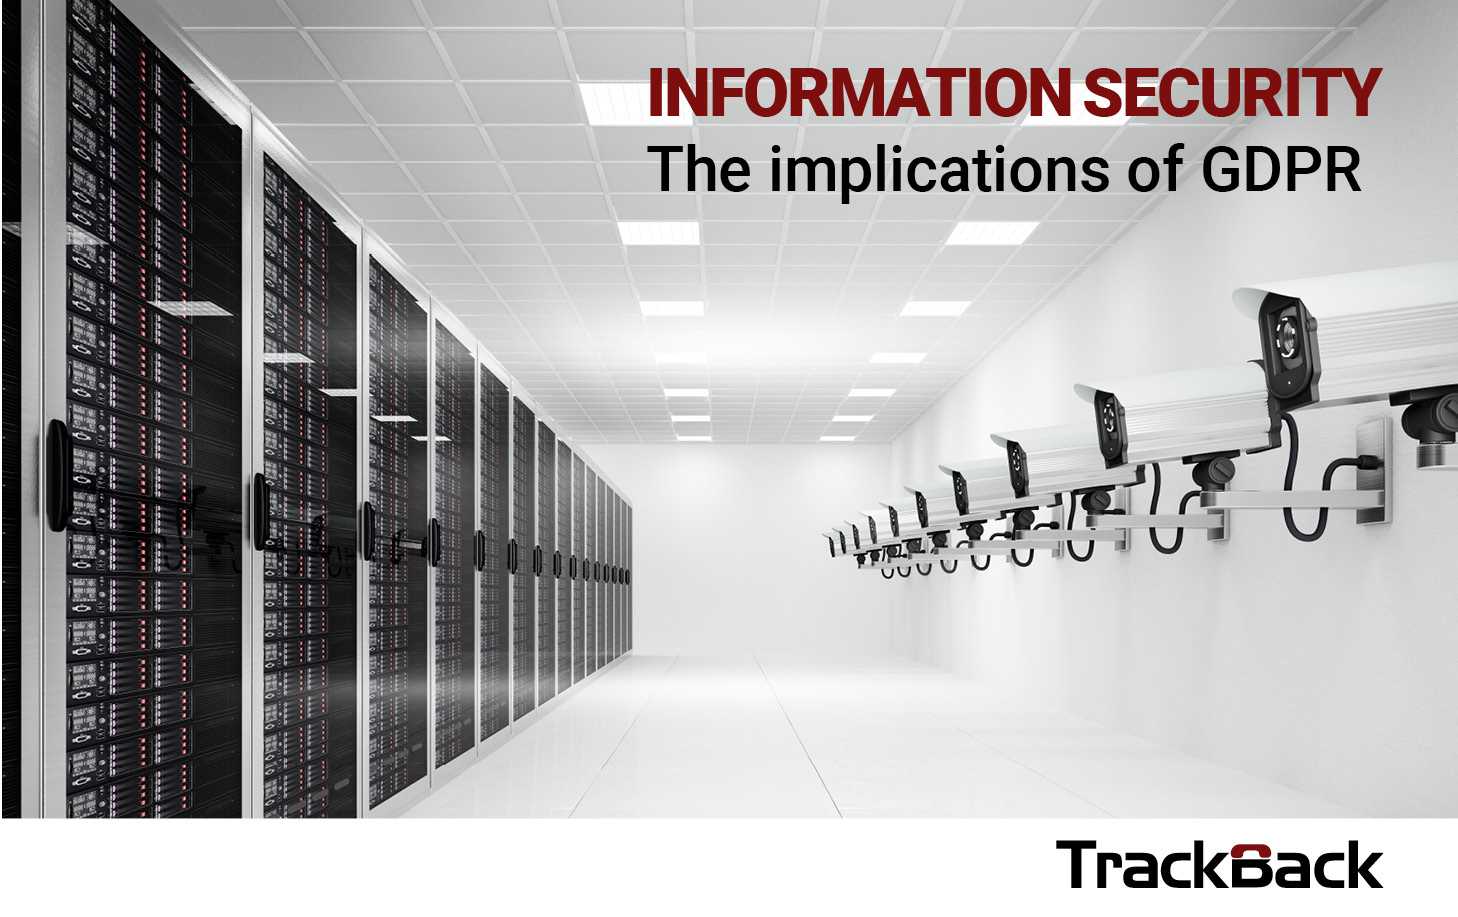 INFORMATION SECURITY - The implications of GDPR